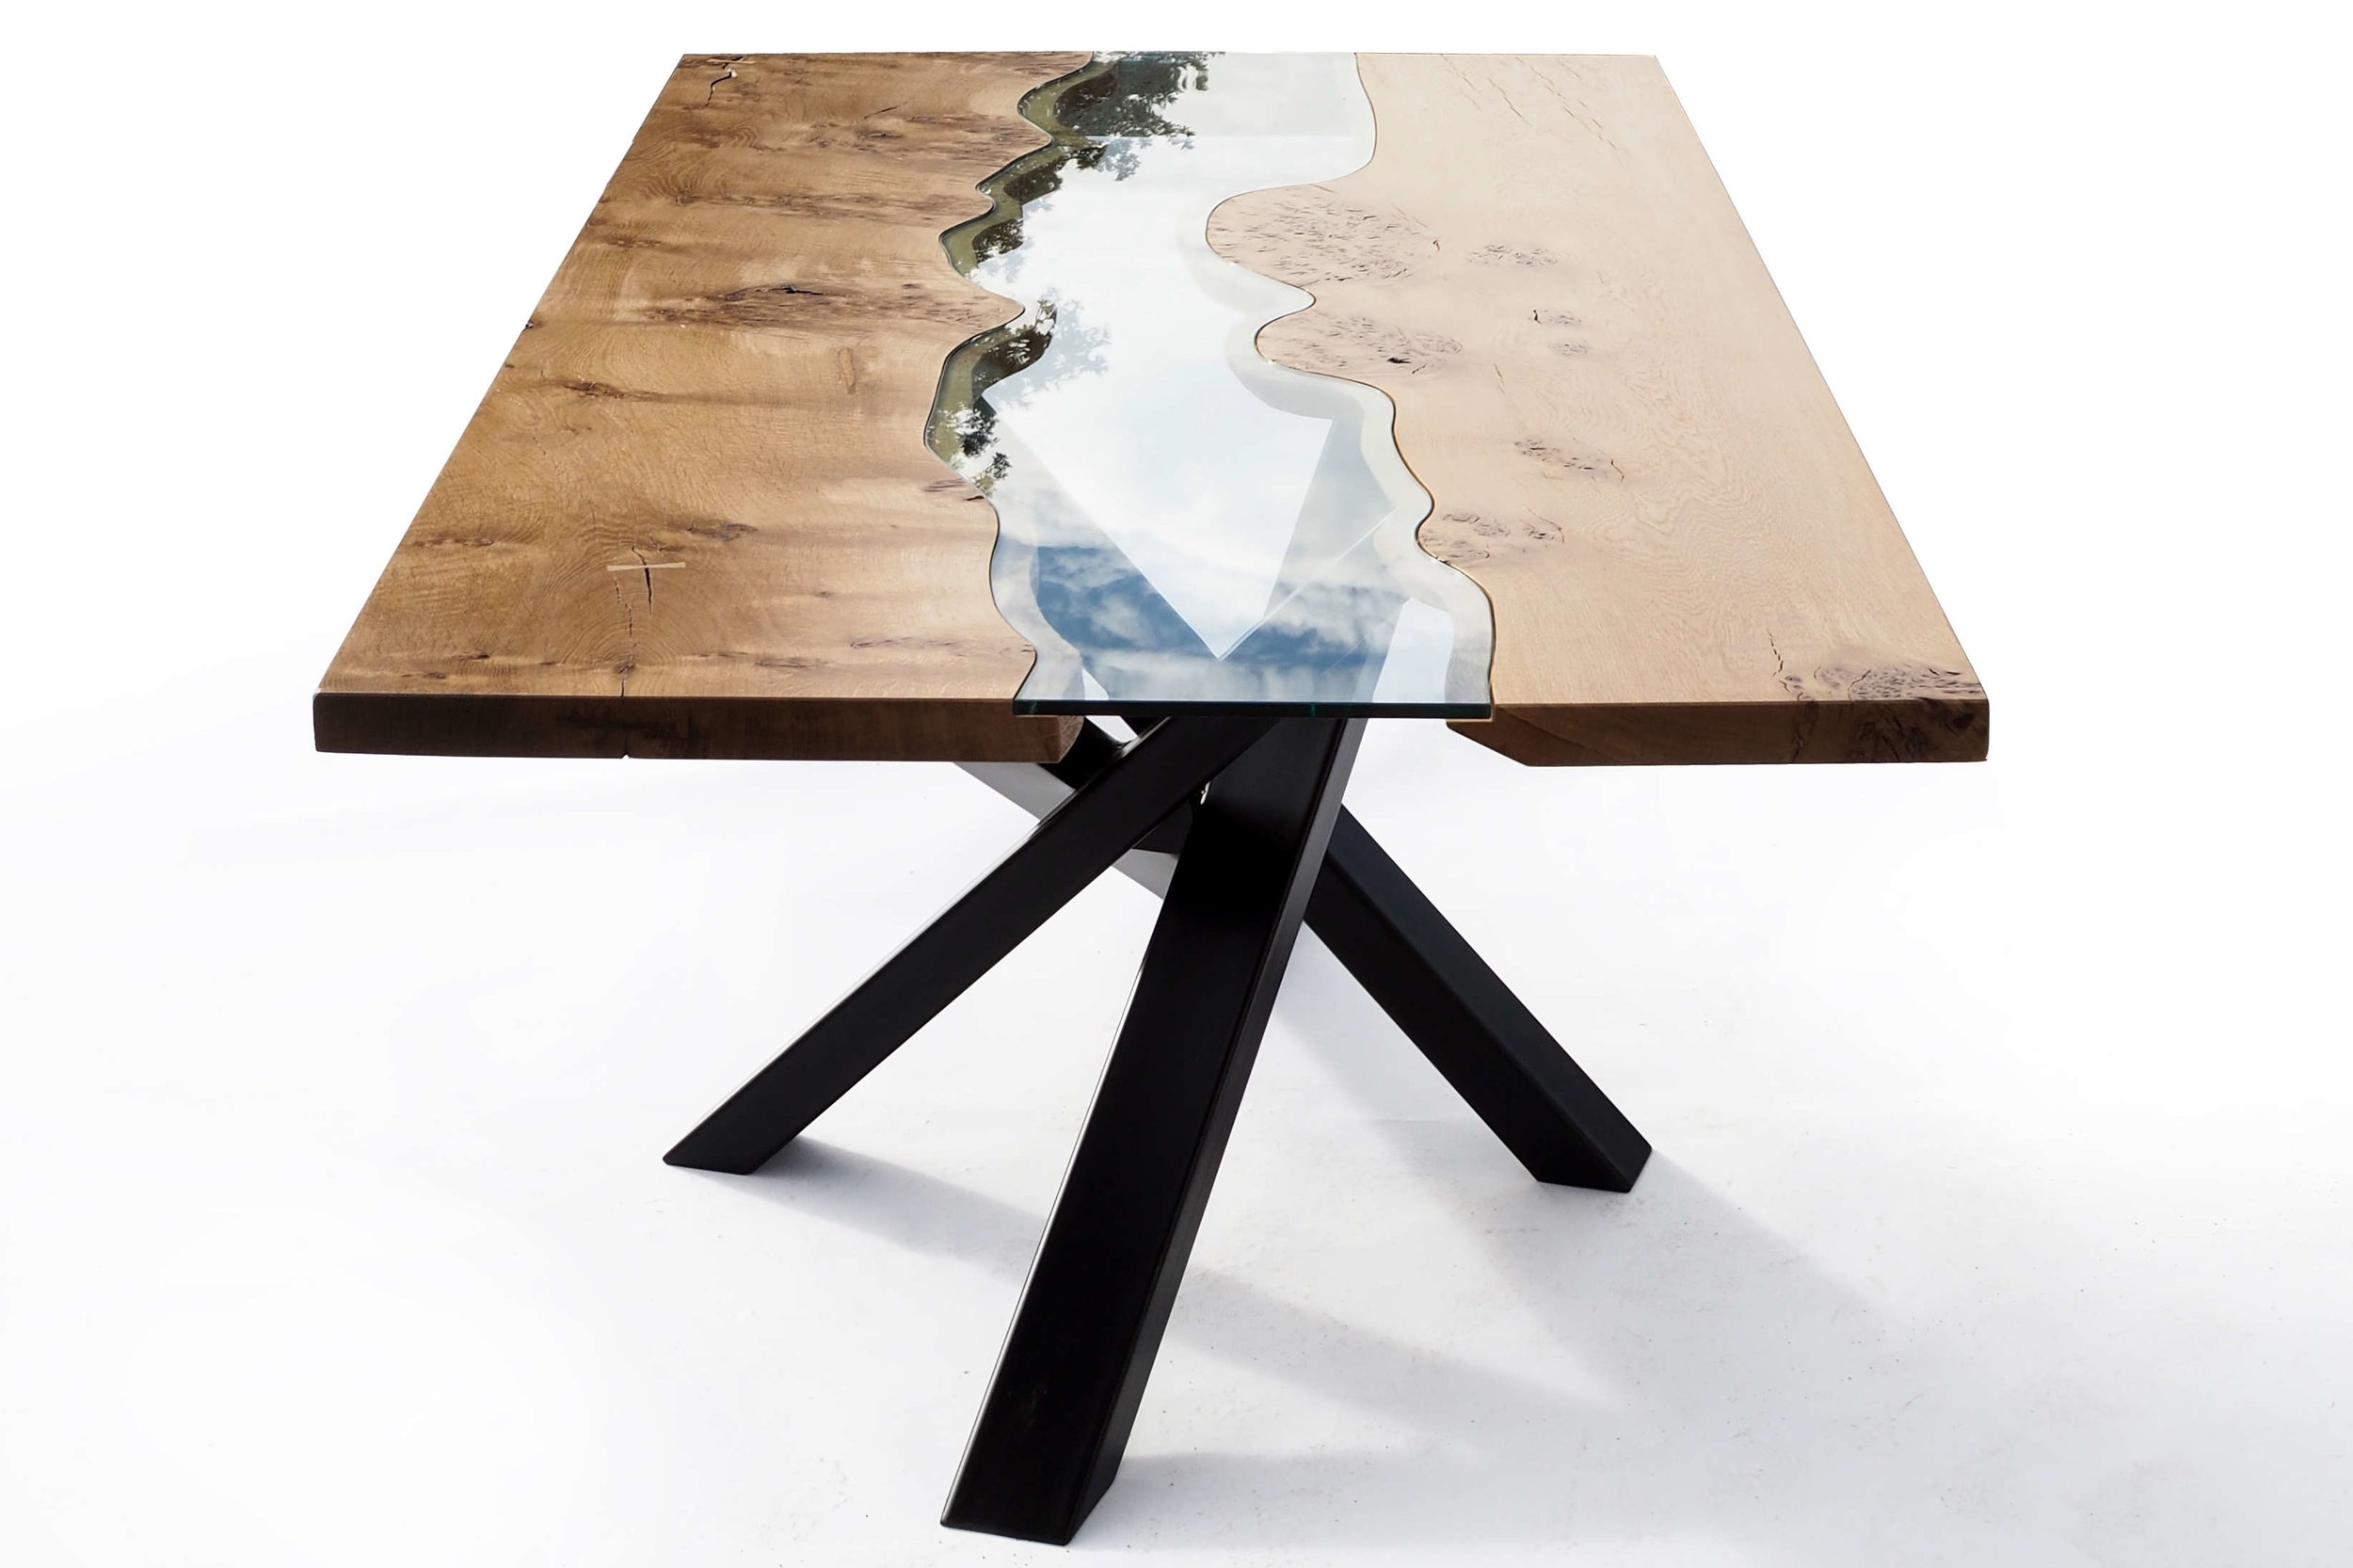 oak, steel and glass river table low res.jpg